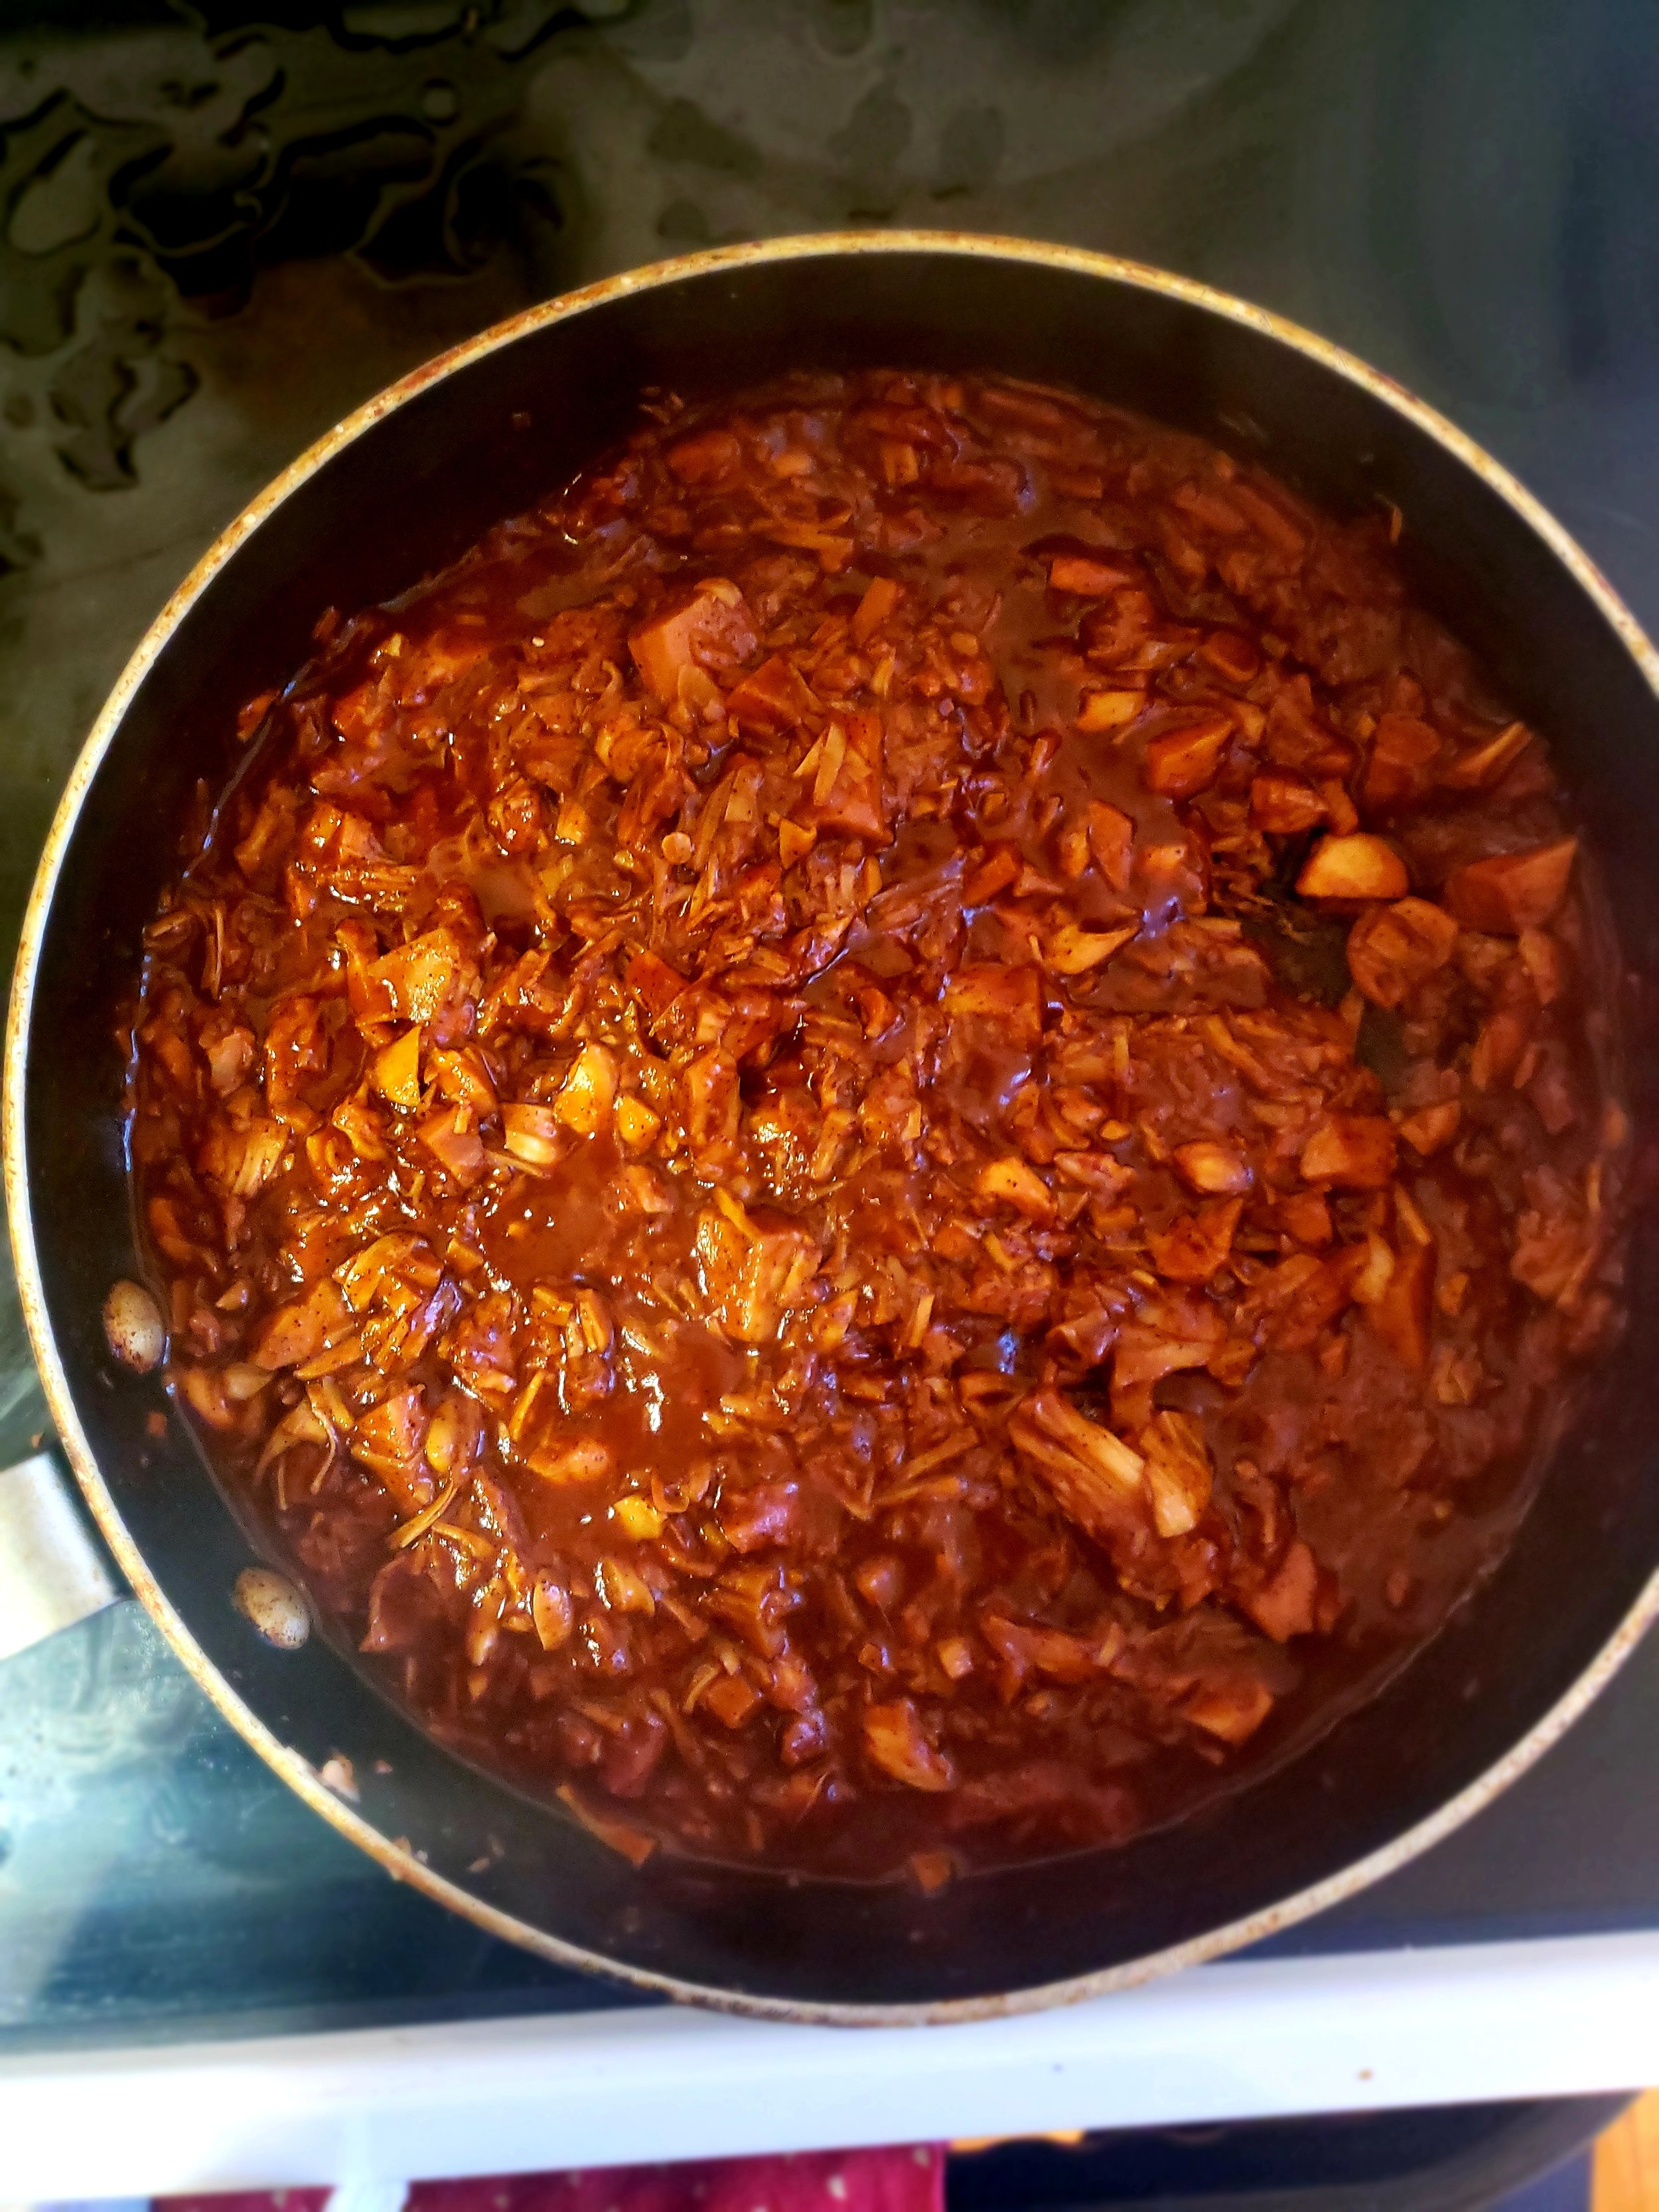 Jackfruit simmering softly in spices